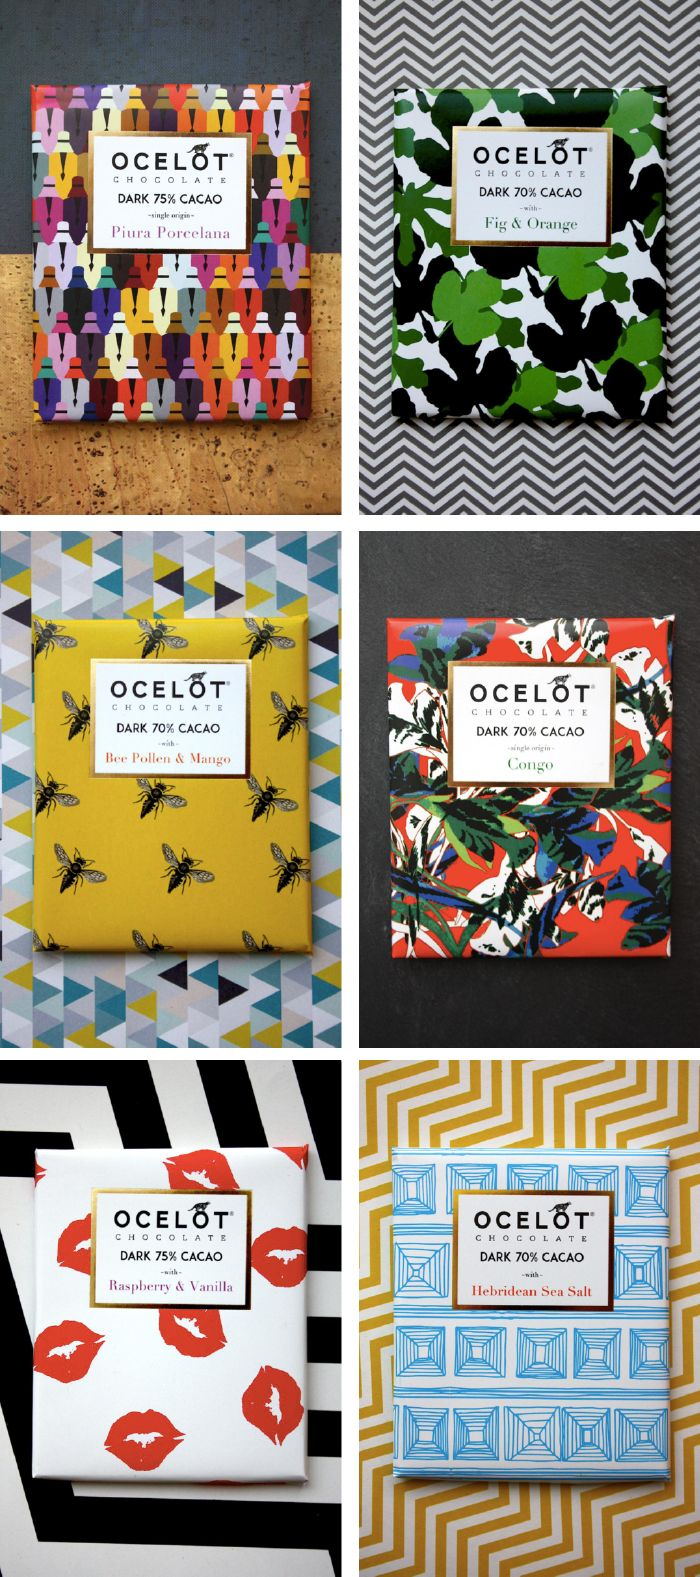 Ocelot Chocolate on forpackad.se